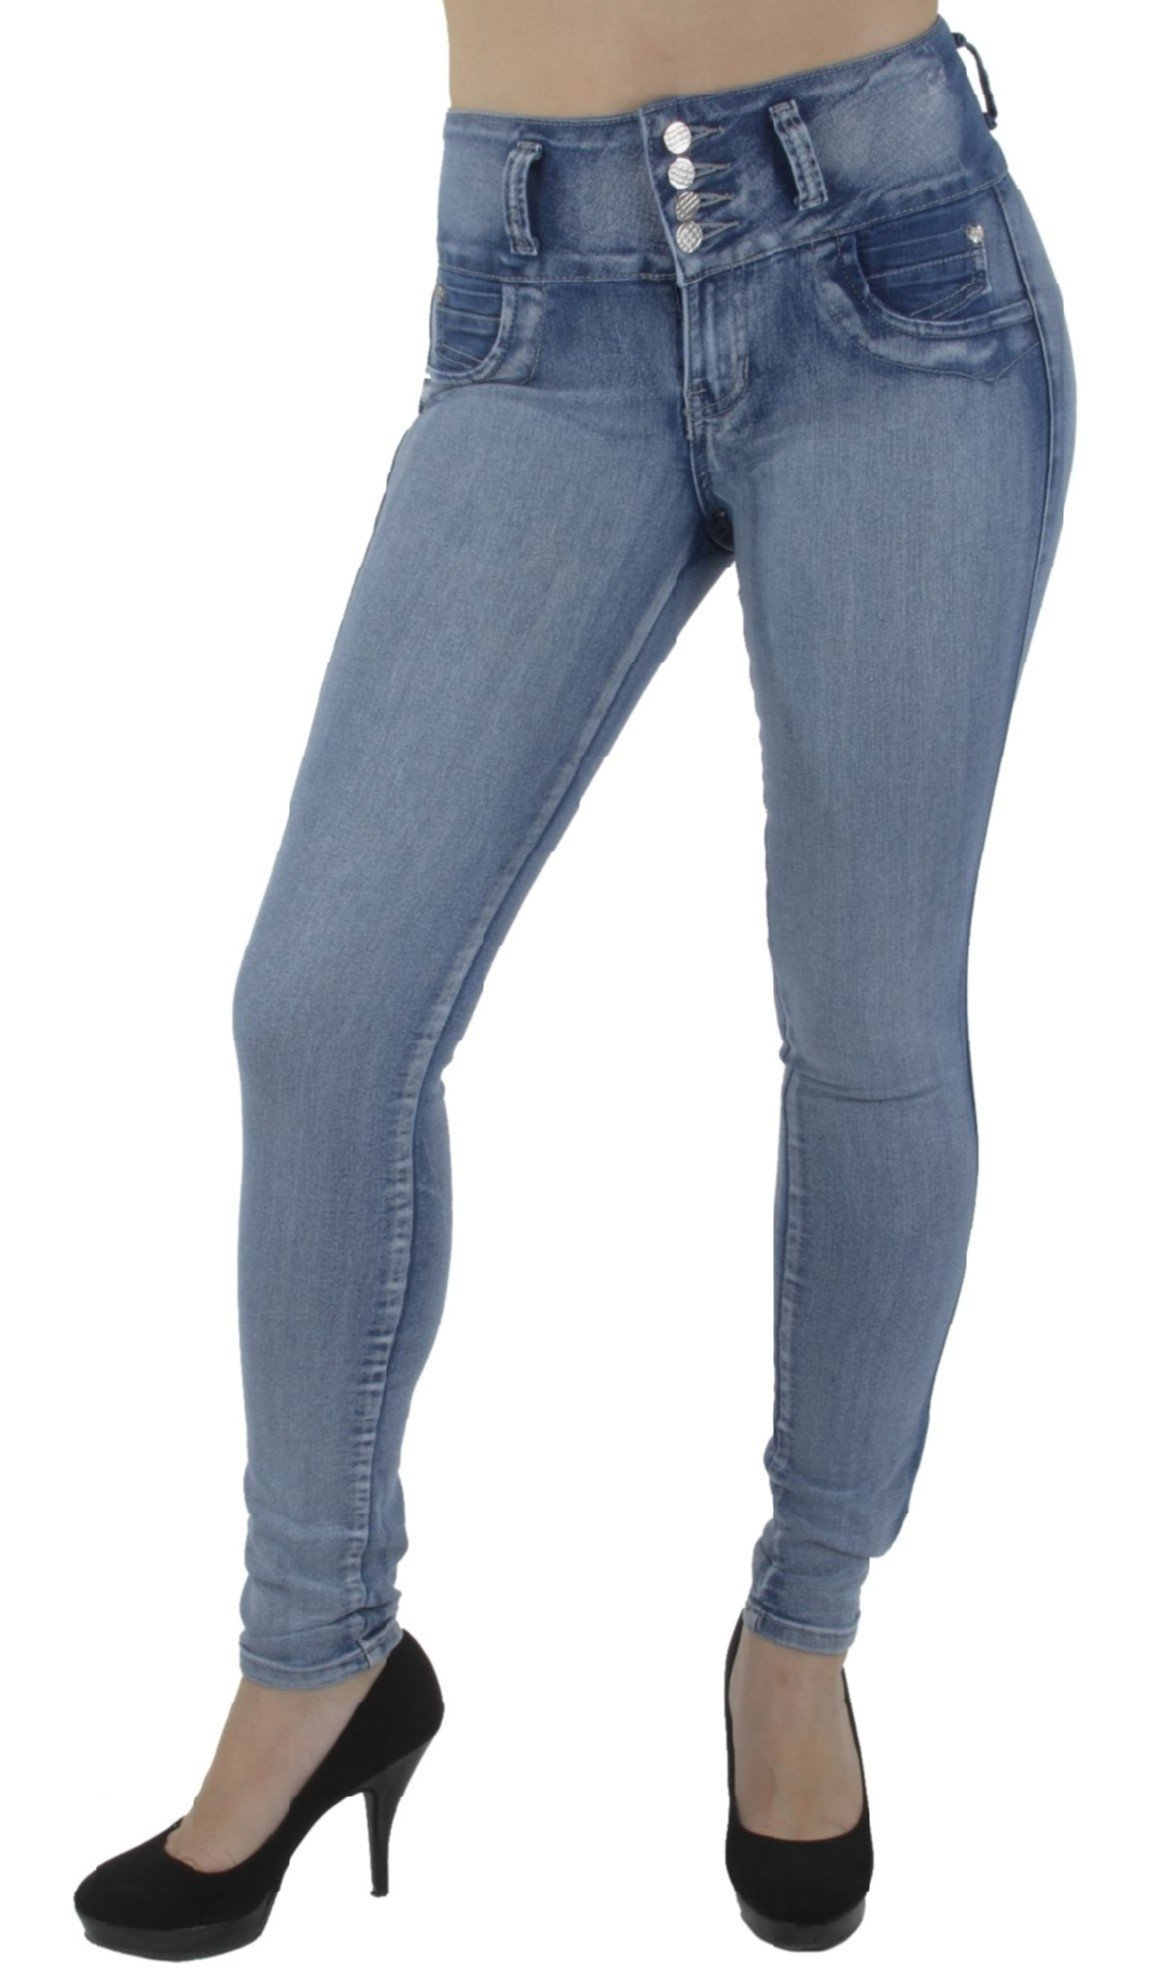 Style G208P– Plus Size, Colombian Design, High Waist, Butt Lift, Skinny Jeans in M. Blue Size 18